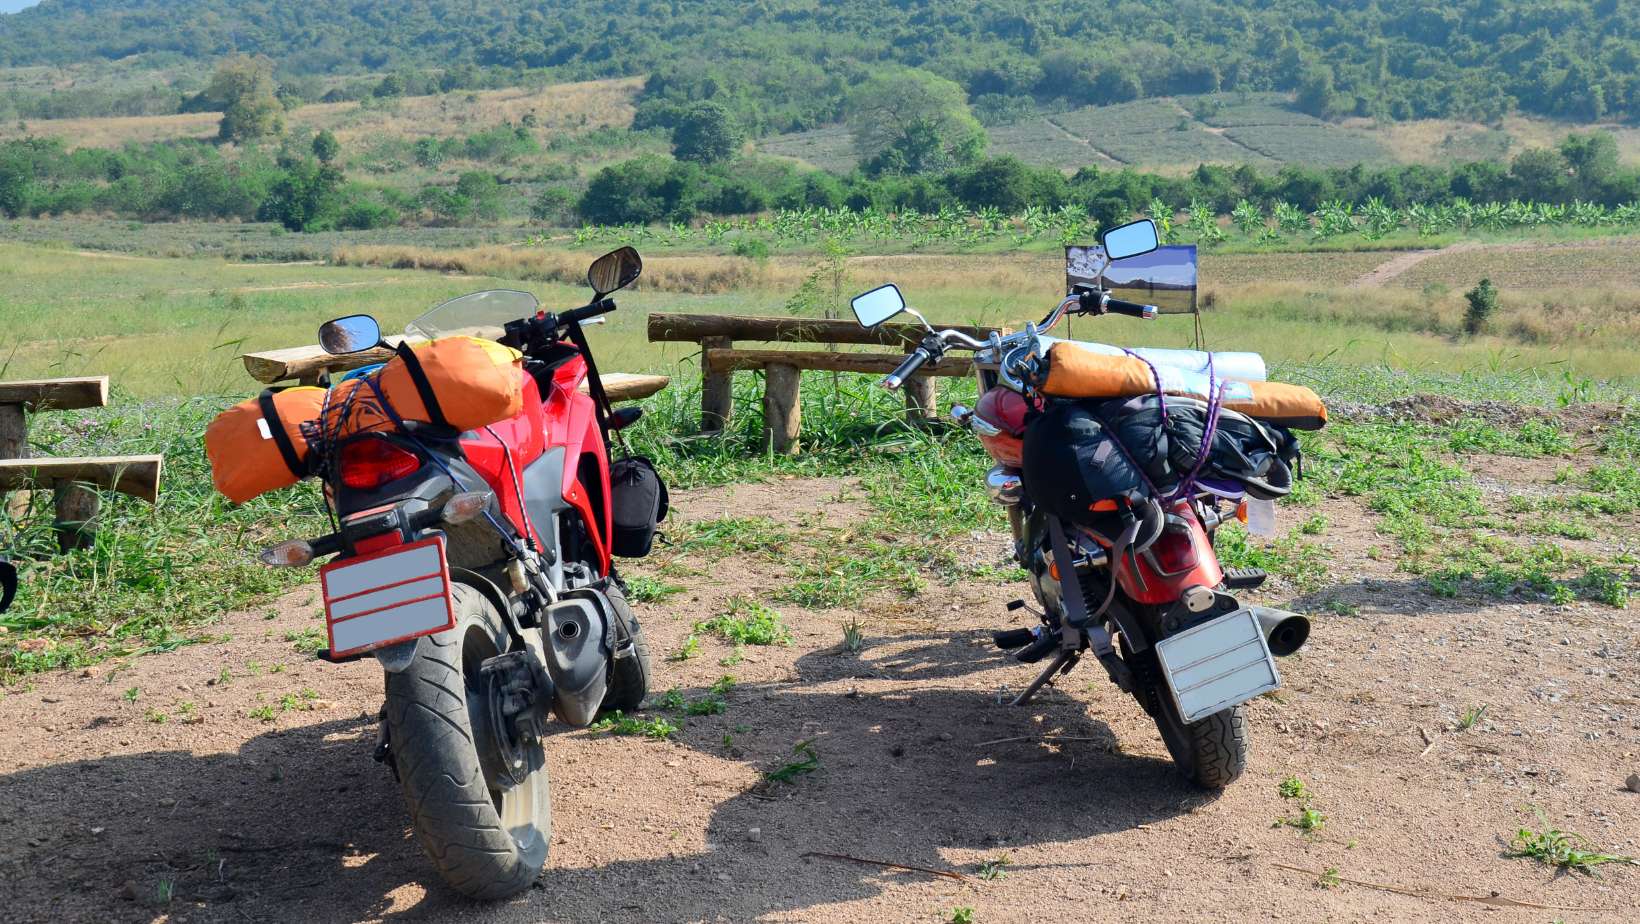 not overpack before motorcycle camping trip